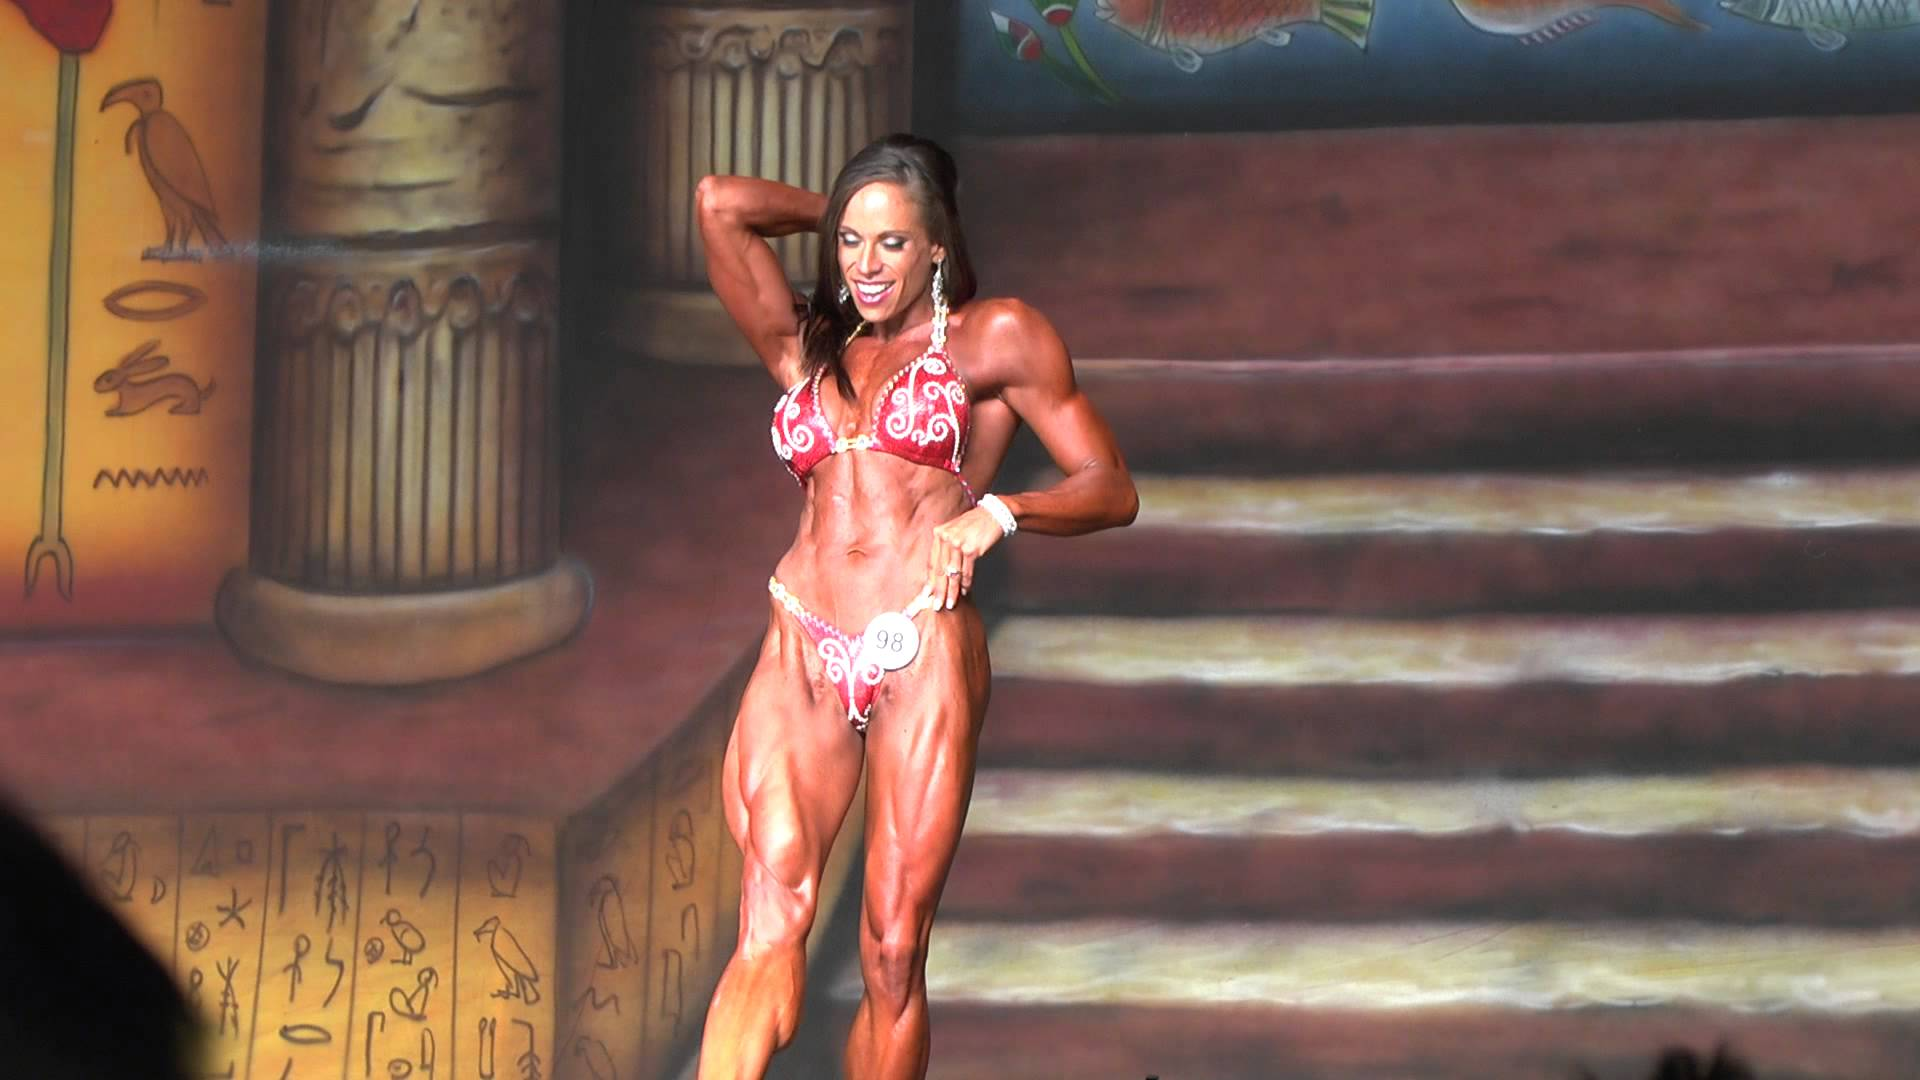 Jillian Reville Posing Routine